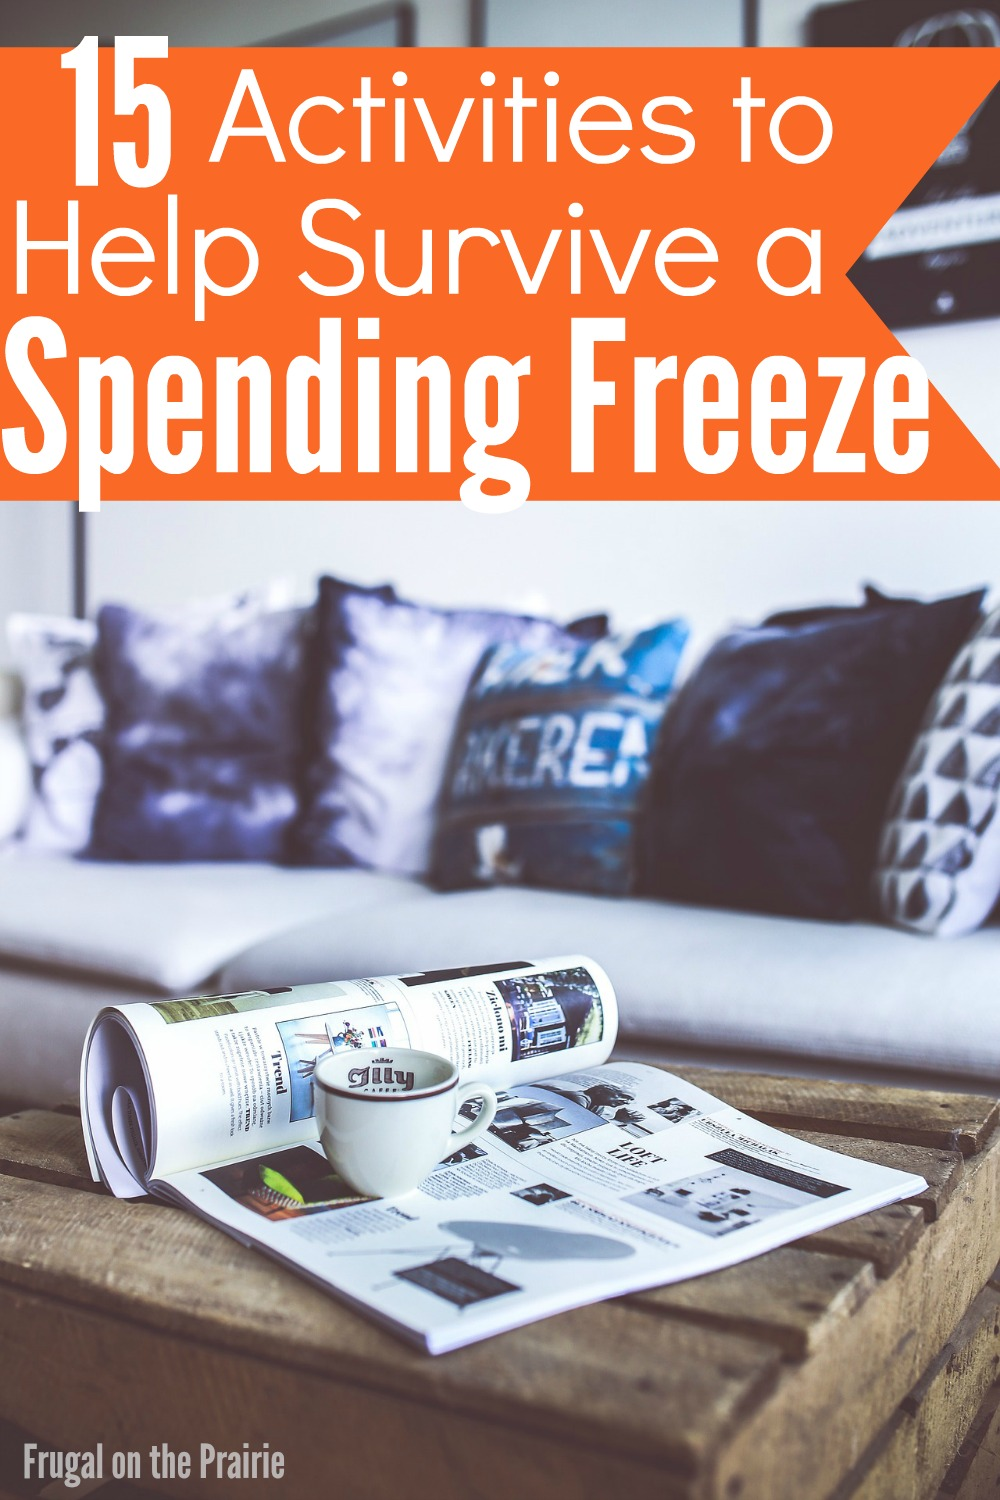 Is your budget on a spending freeze? Use these FREE activities to help pass the time!